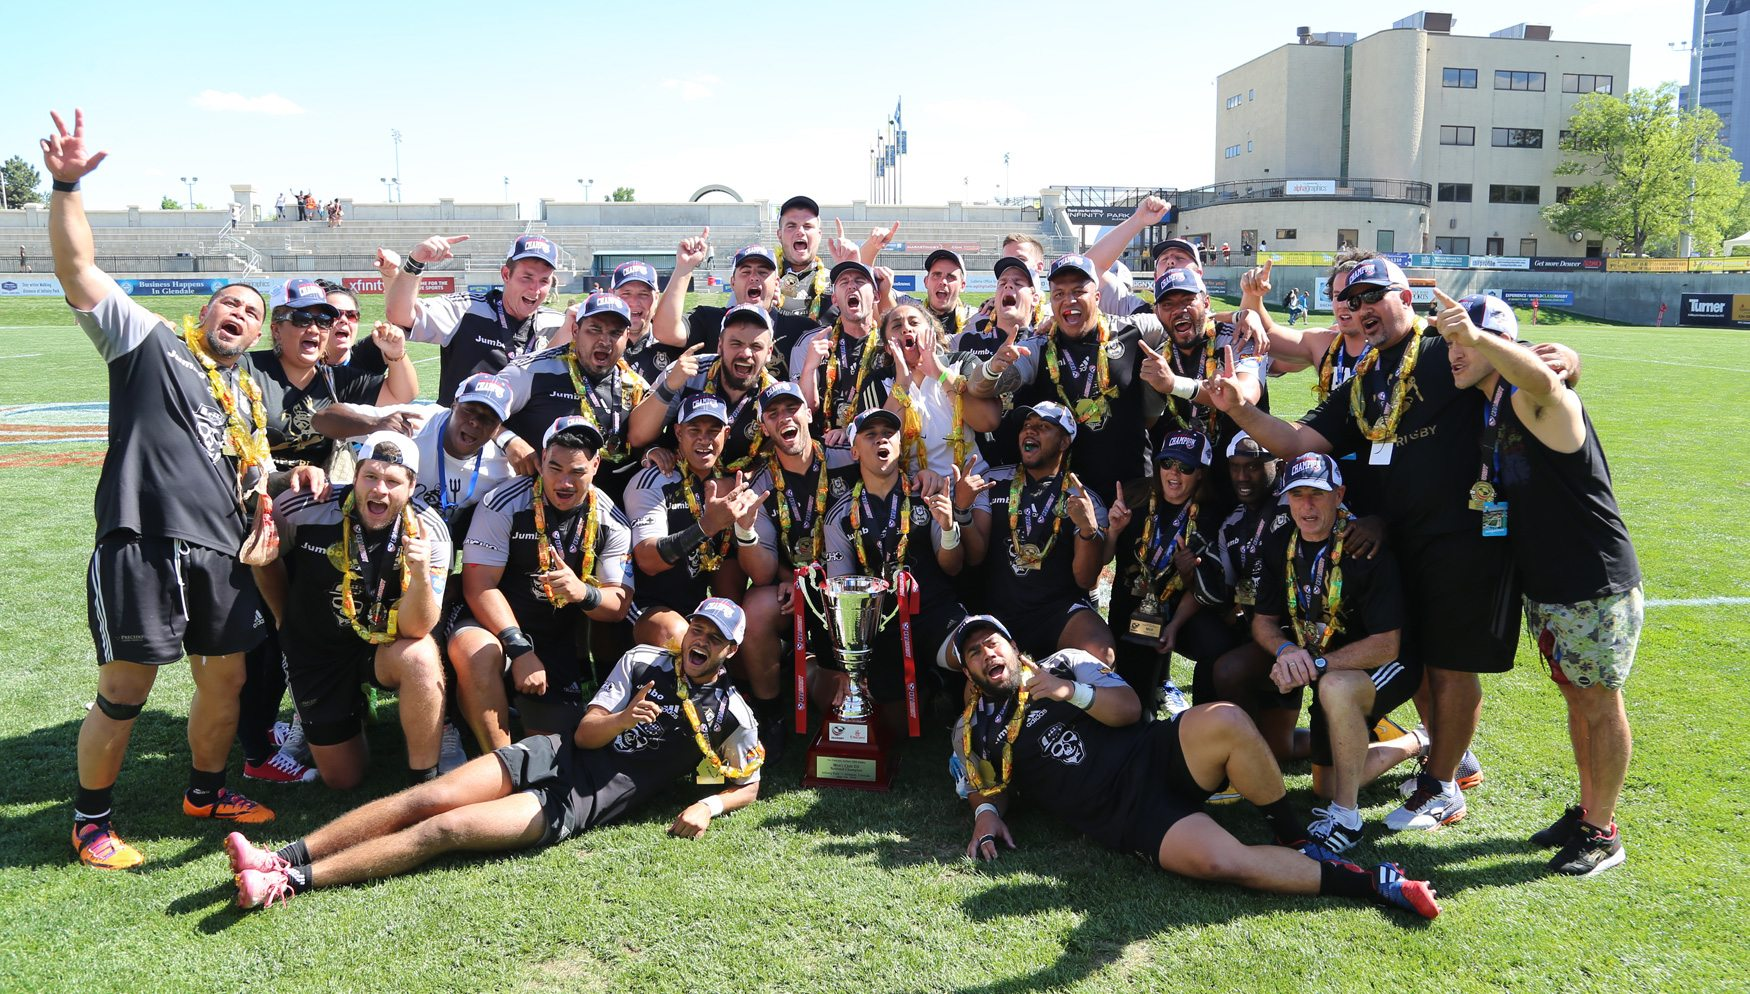 Tempe ends years of waiting with Men's DII National Championship victory over Detroit